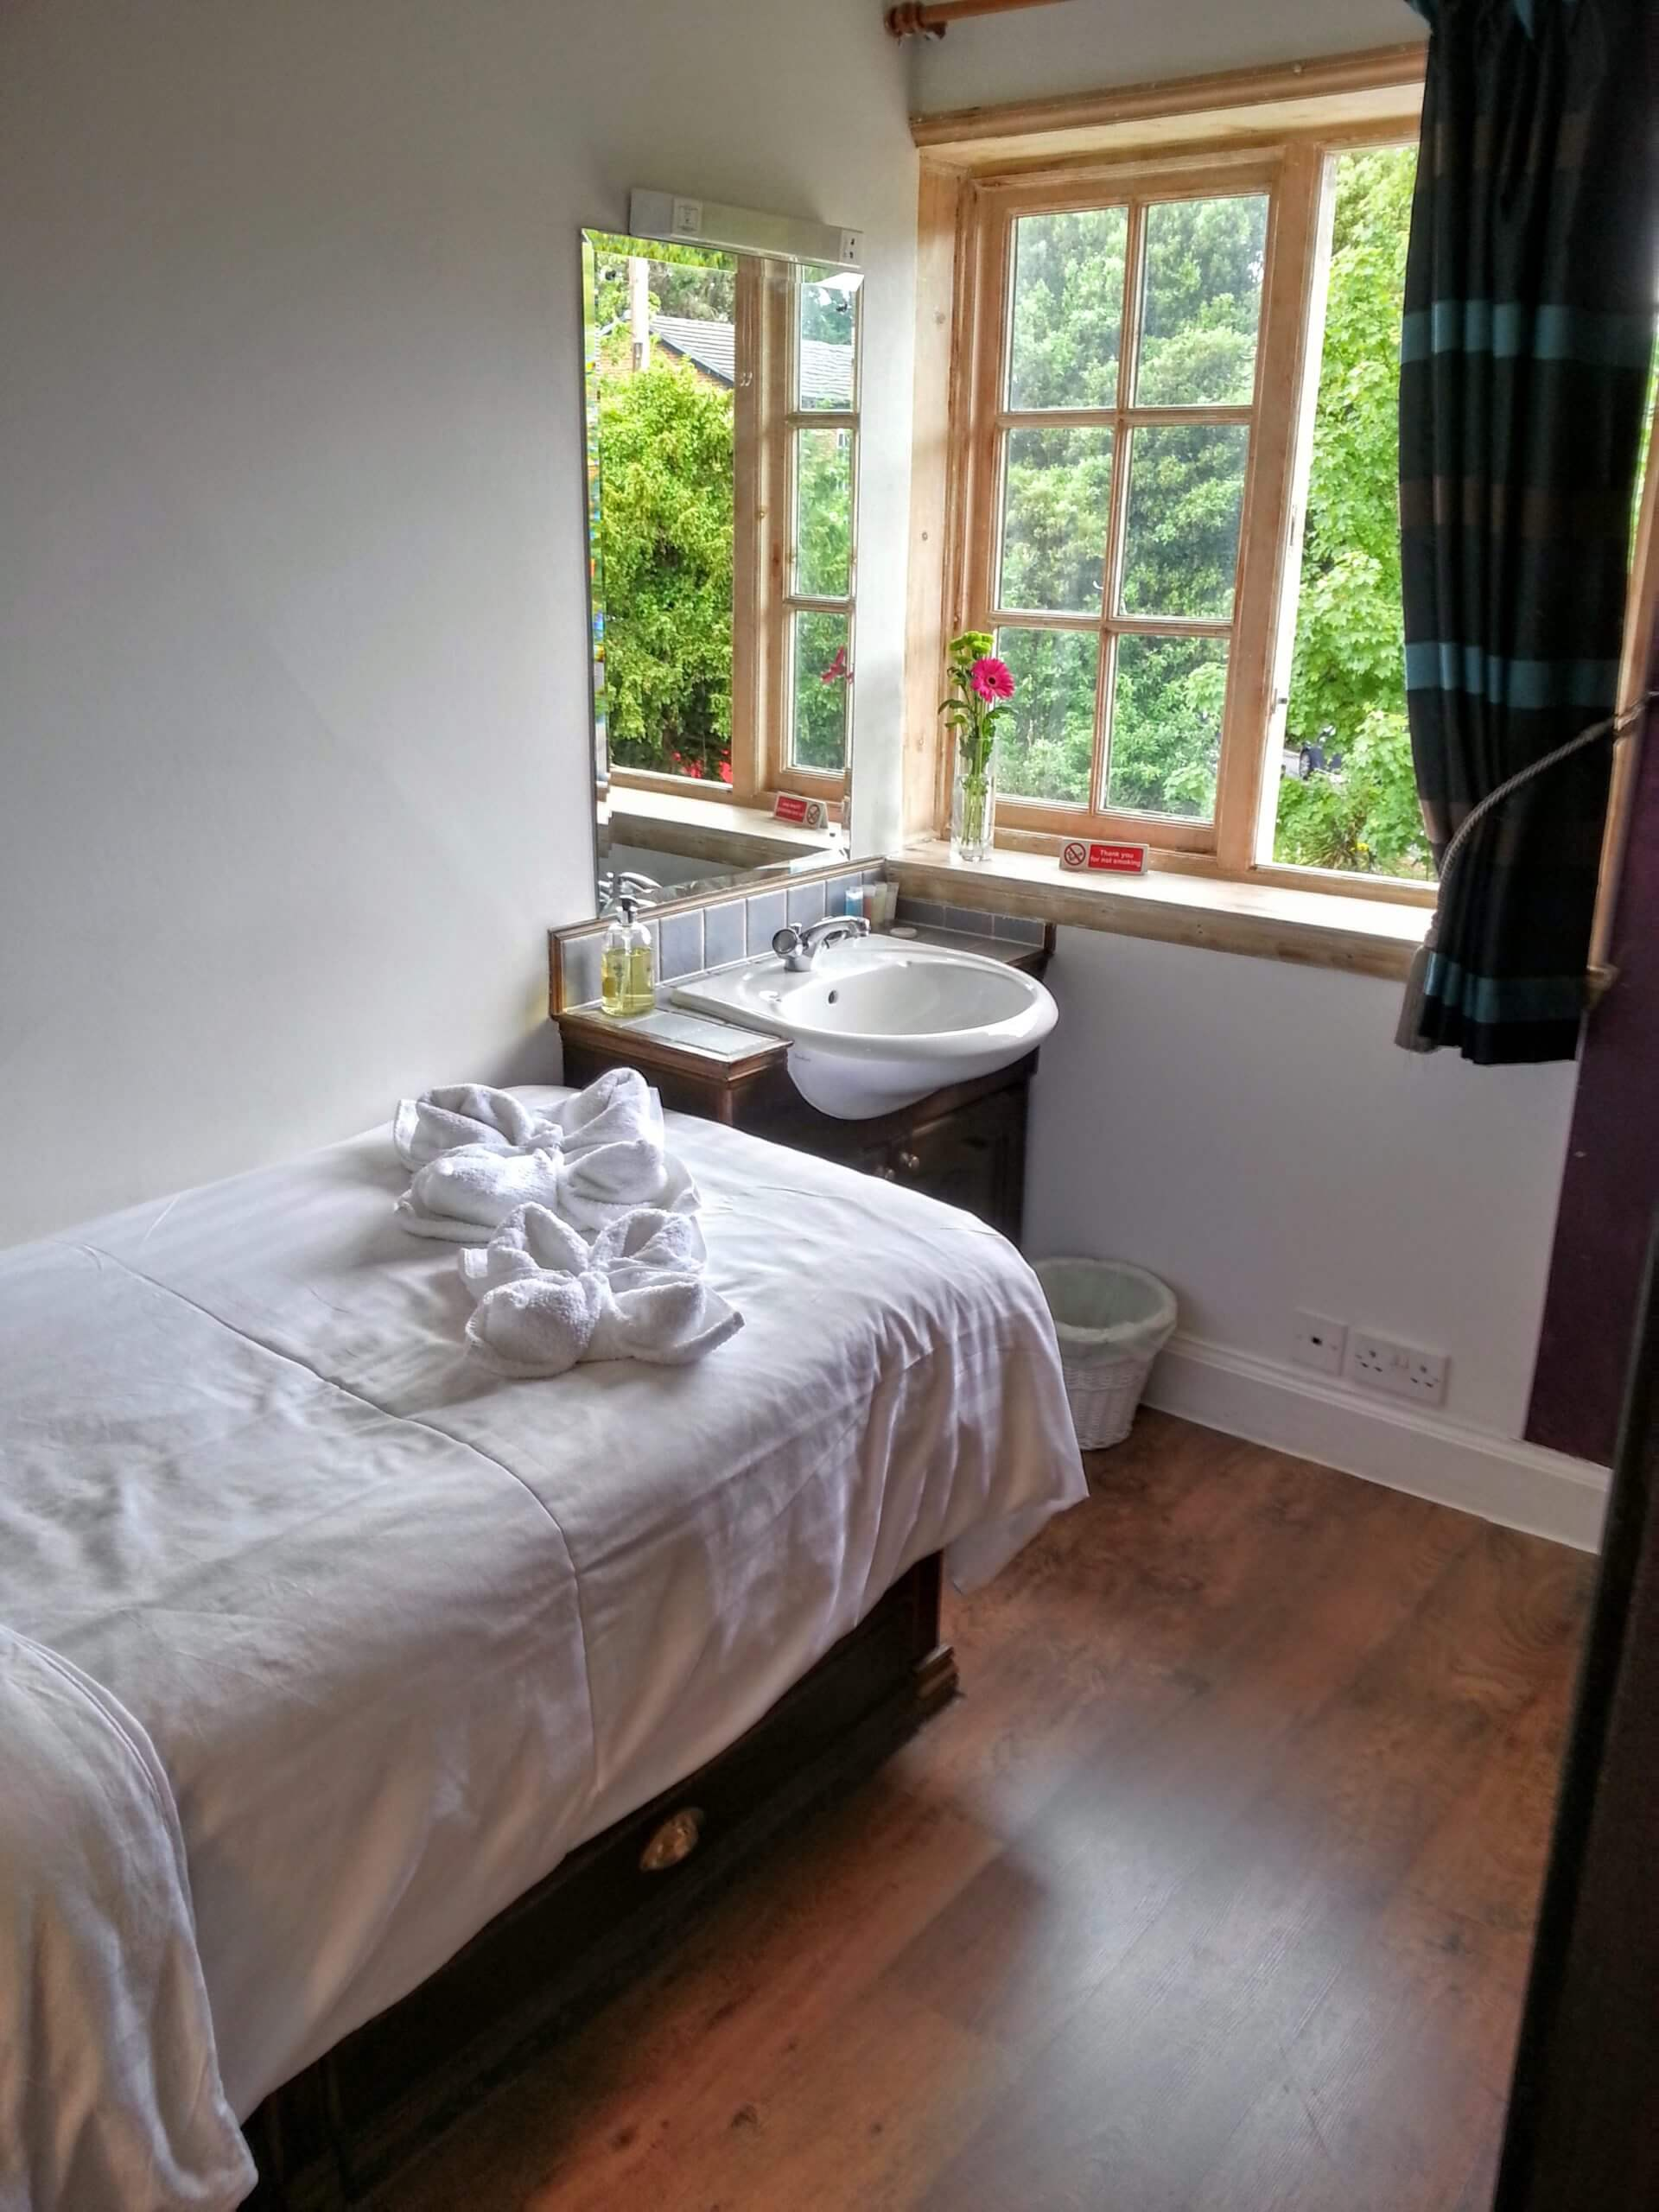 Bed and breakfast near Claygate